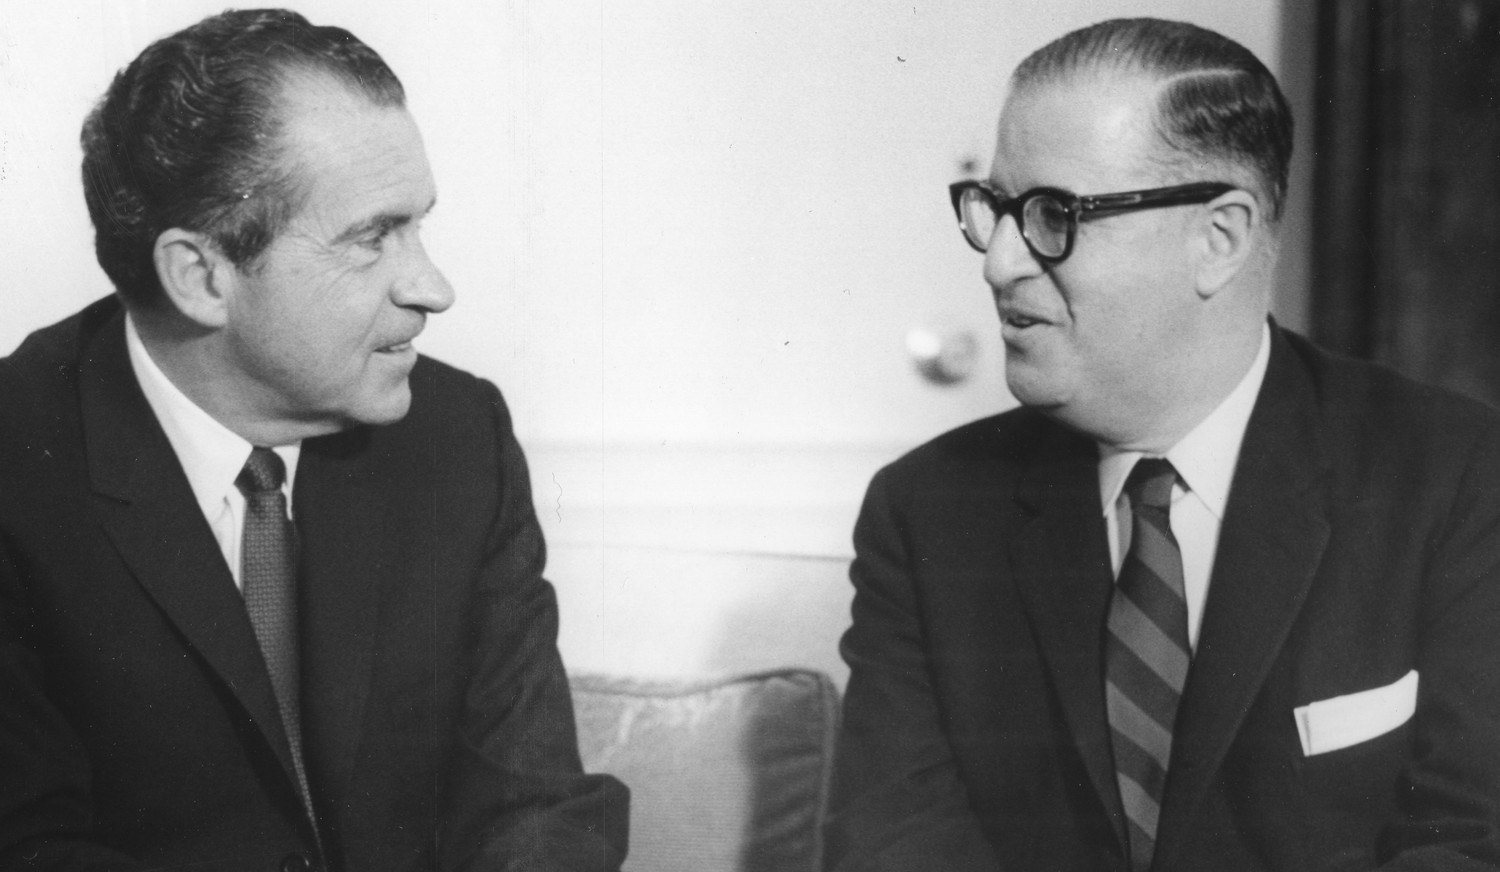 President Richard M Nixon with Foreign Ministrer Abba Eban of Israel, Washington DC, March 14, 1969. (Photo by PhotoQuest/Getty Images)